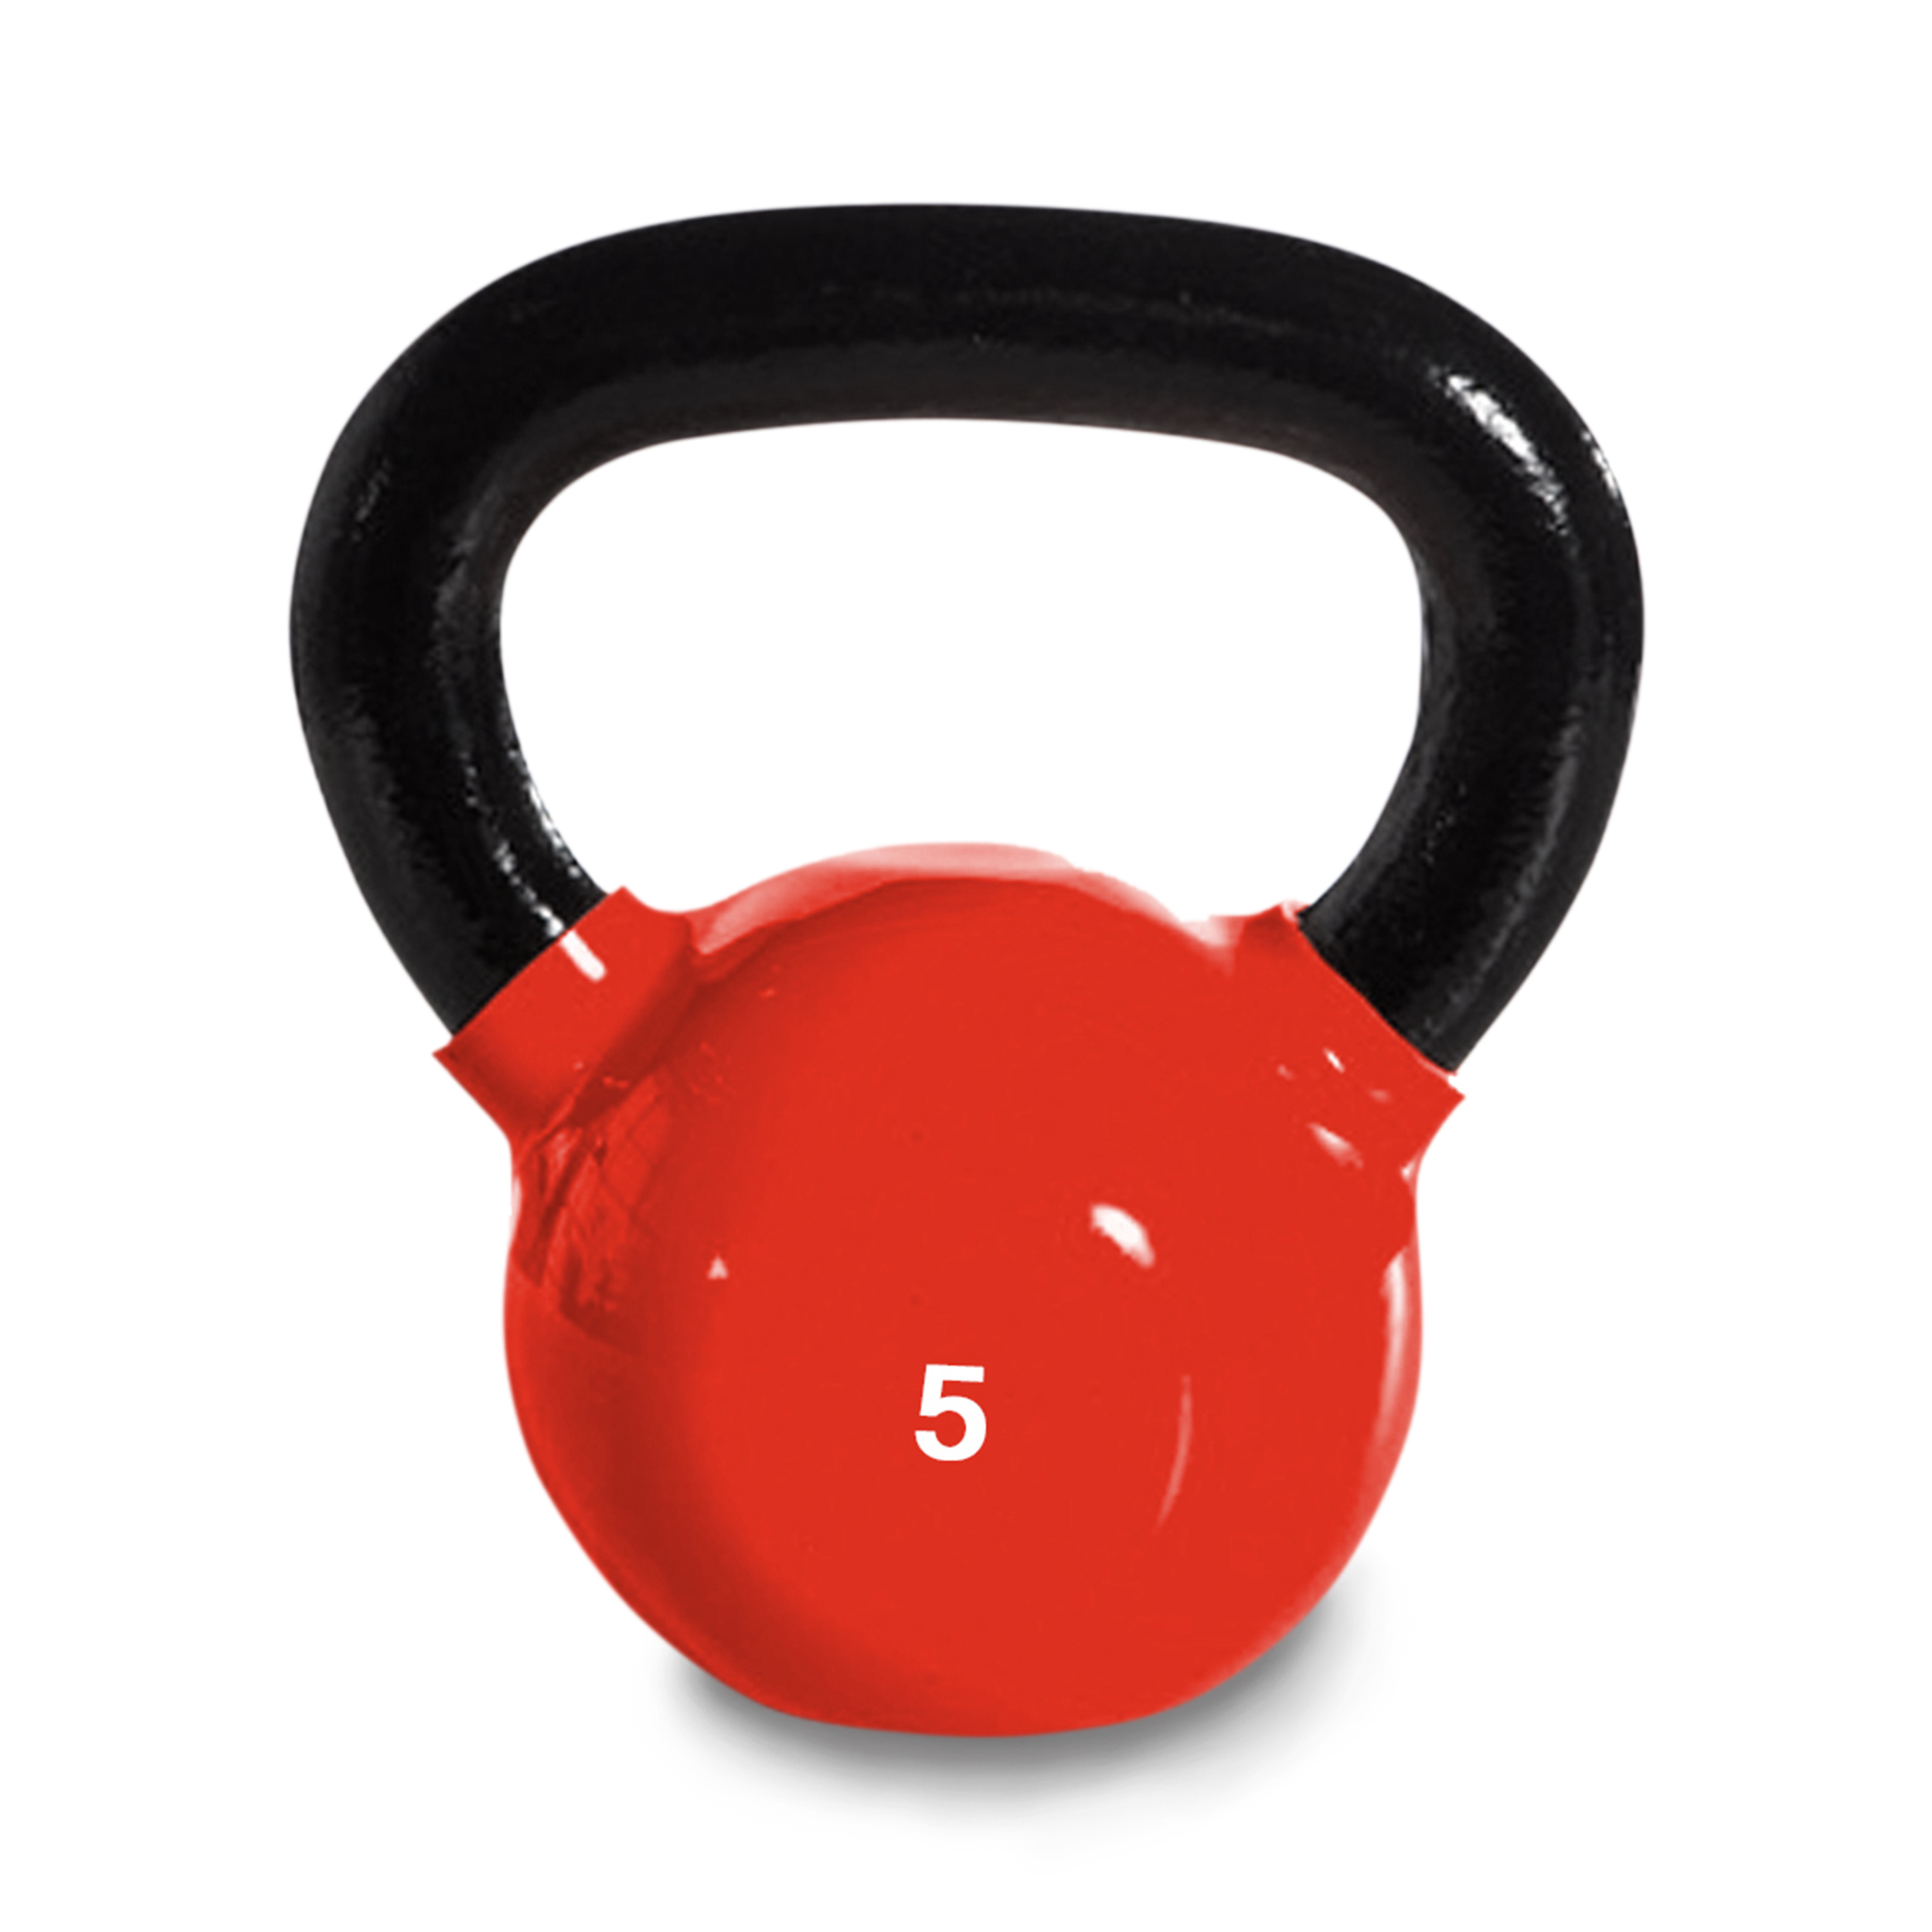 Harvil 5-Pound Cast Iron Red Kettlebell Weight with Ergonomically Rounded Handles and Pound Markings.